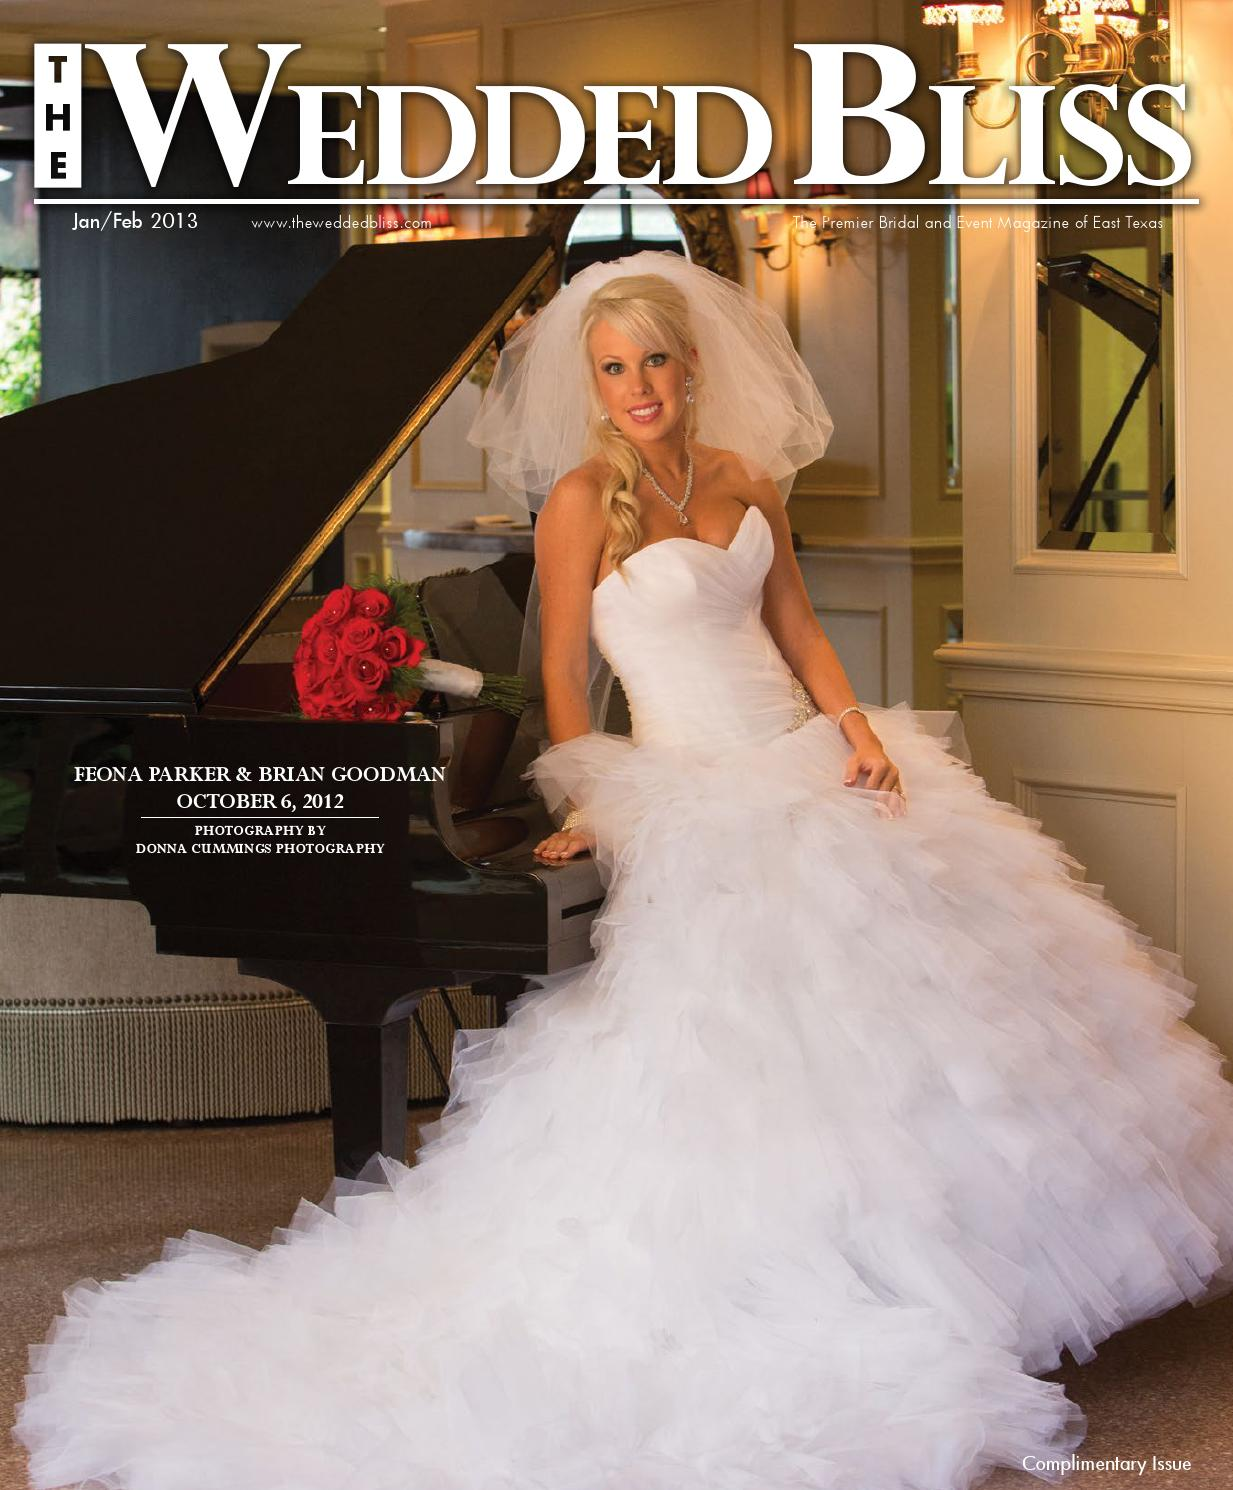 The Wedded Bliss - January-February 2013 by The Wedded Bliss - issuu